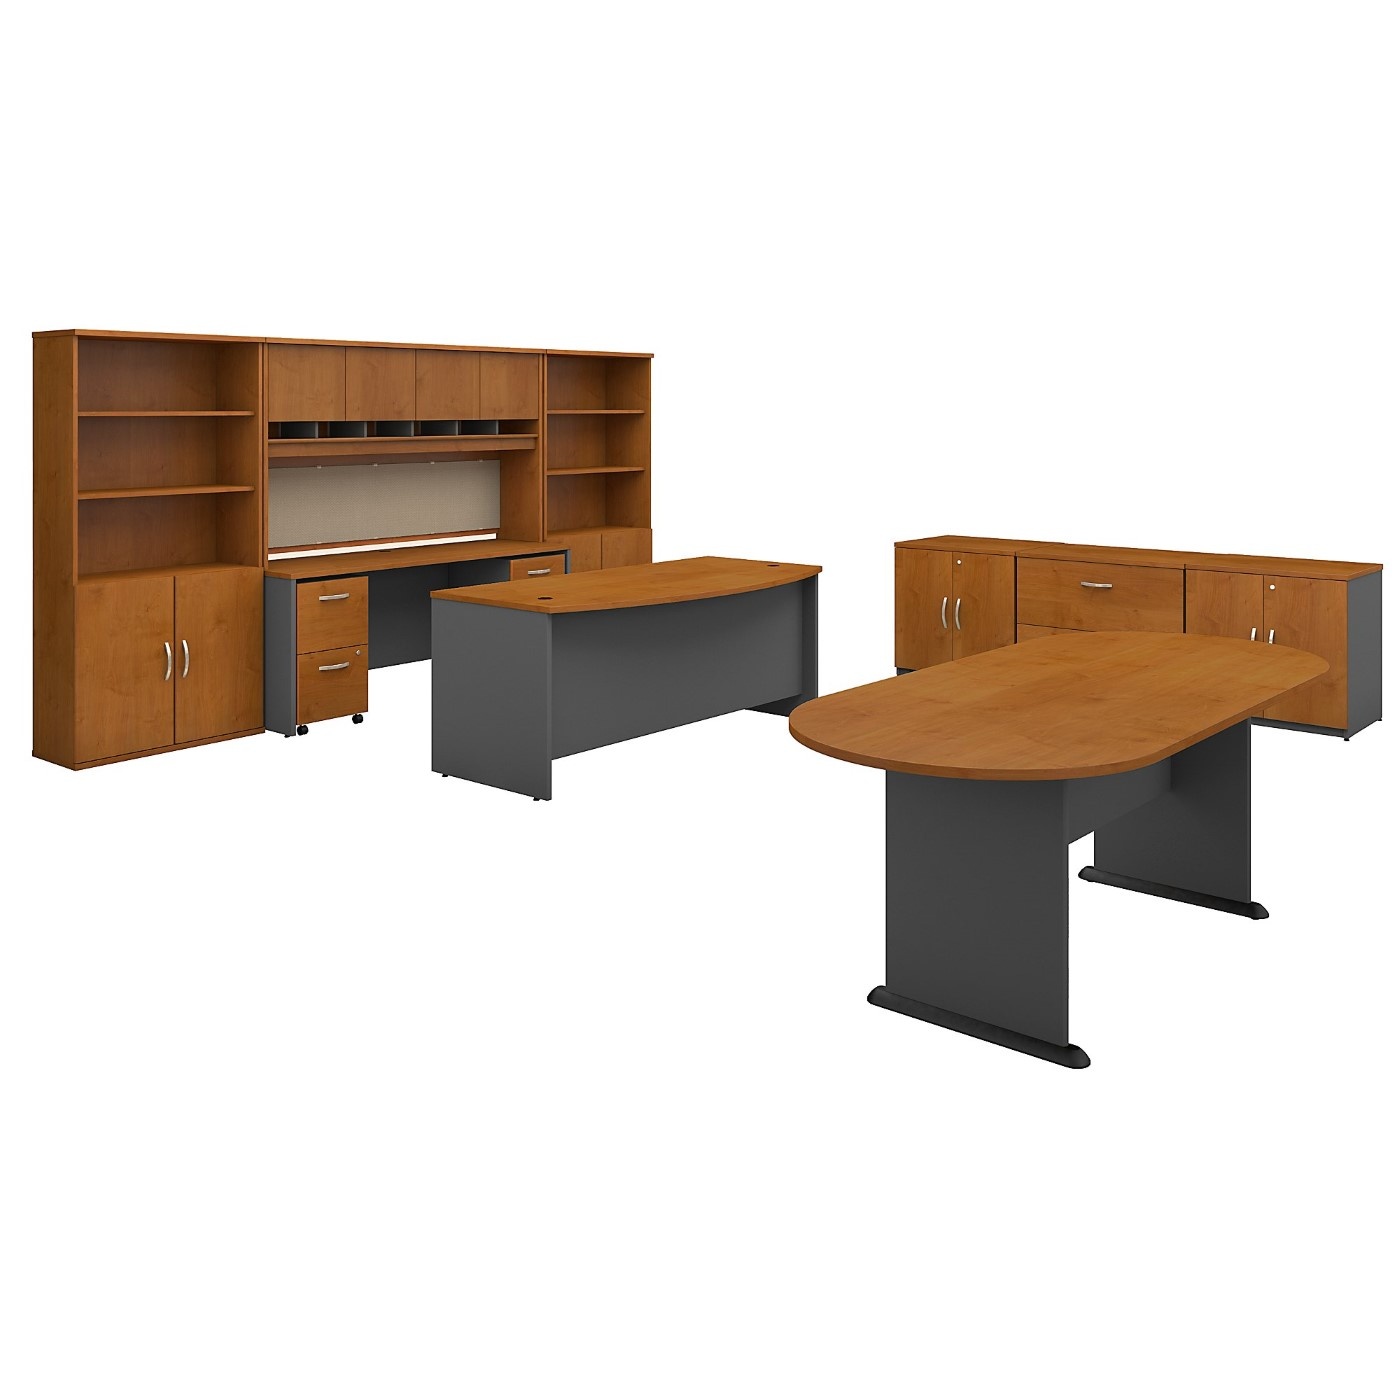 BUSH BUSINESS FURNITURE SERIES C EXECUTIVE OFFICE SUITE WITH STORAGE AND CONFERENCE TABLE. FREE SHIPPING